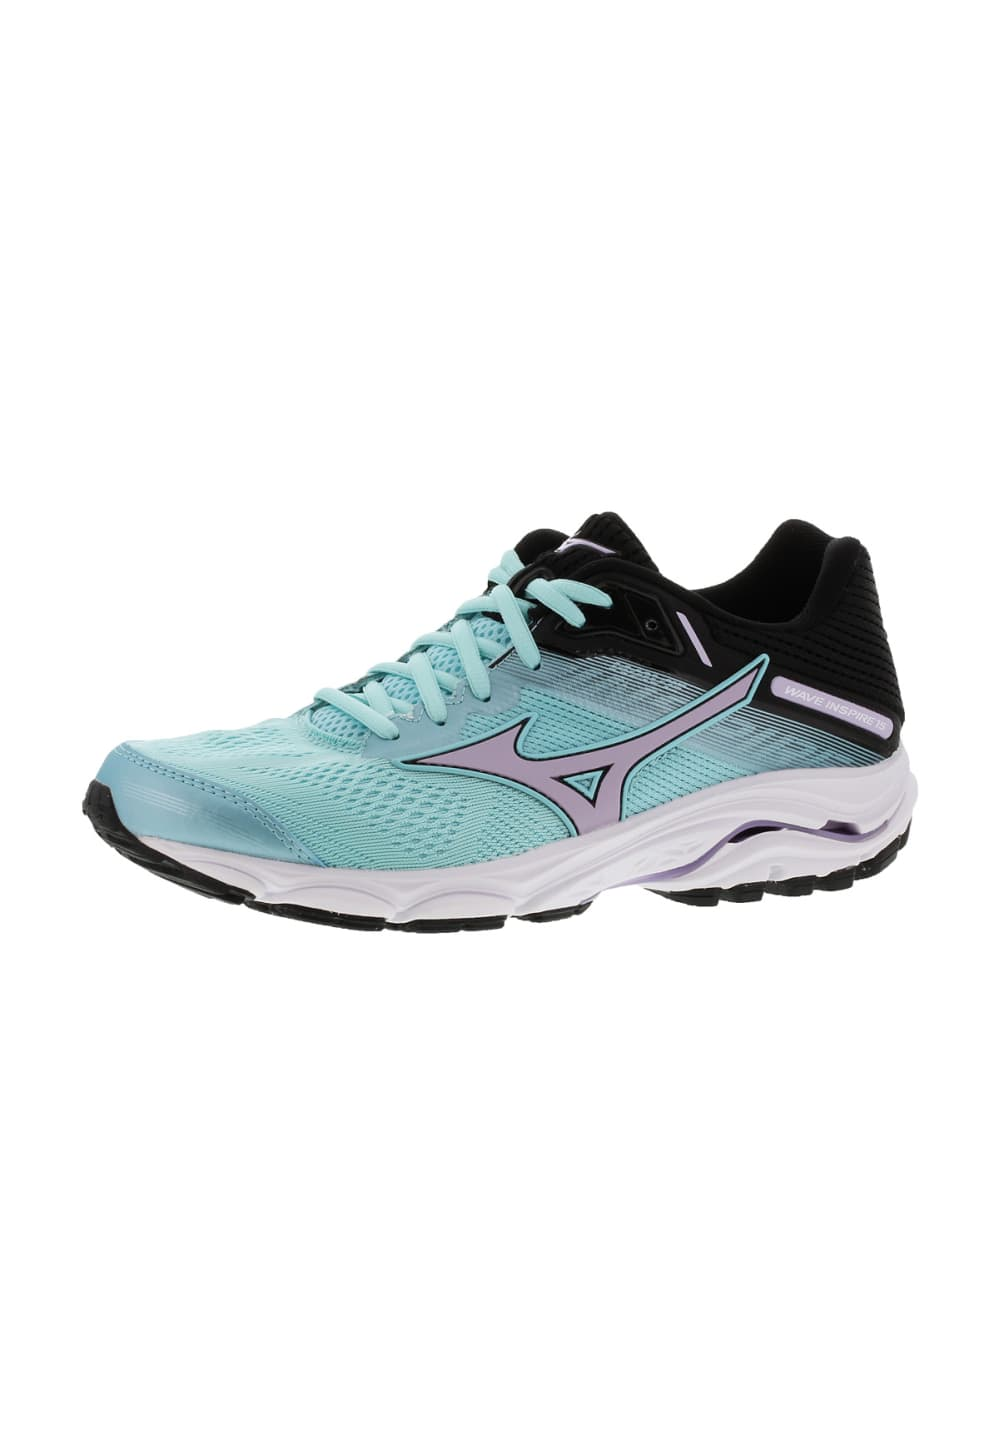 finest selection bc576 785ec Mizuno Wave Inspire 15 - Running shoes for Women - Blue